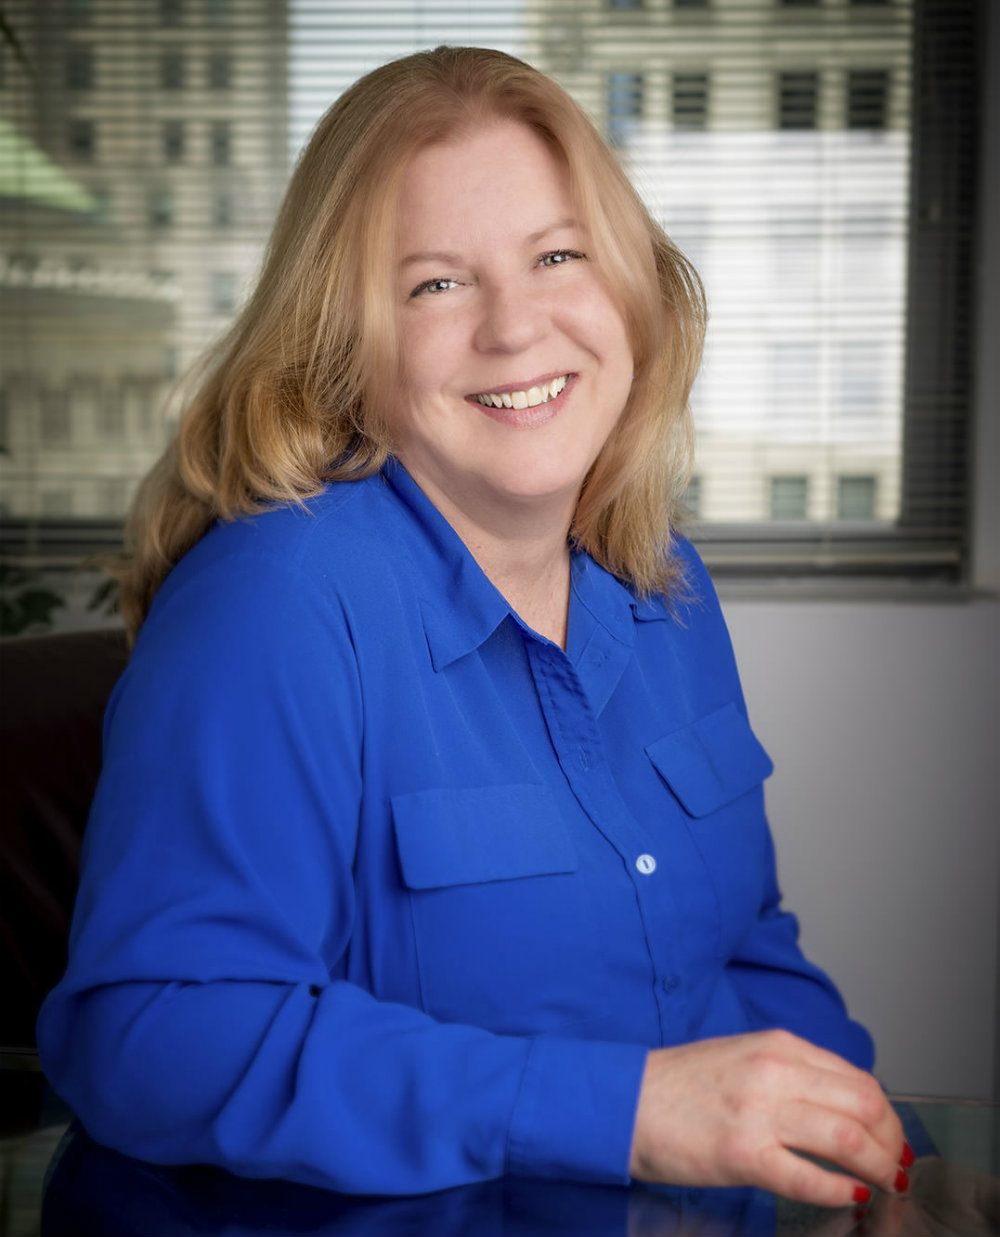 Kim Gallante, Director of Corporate Compliance, Boyce Technologies